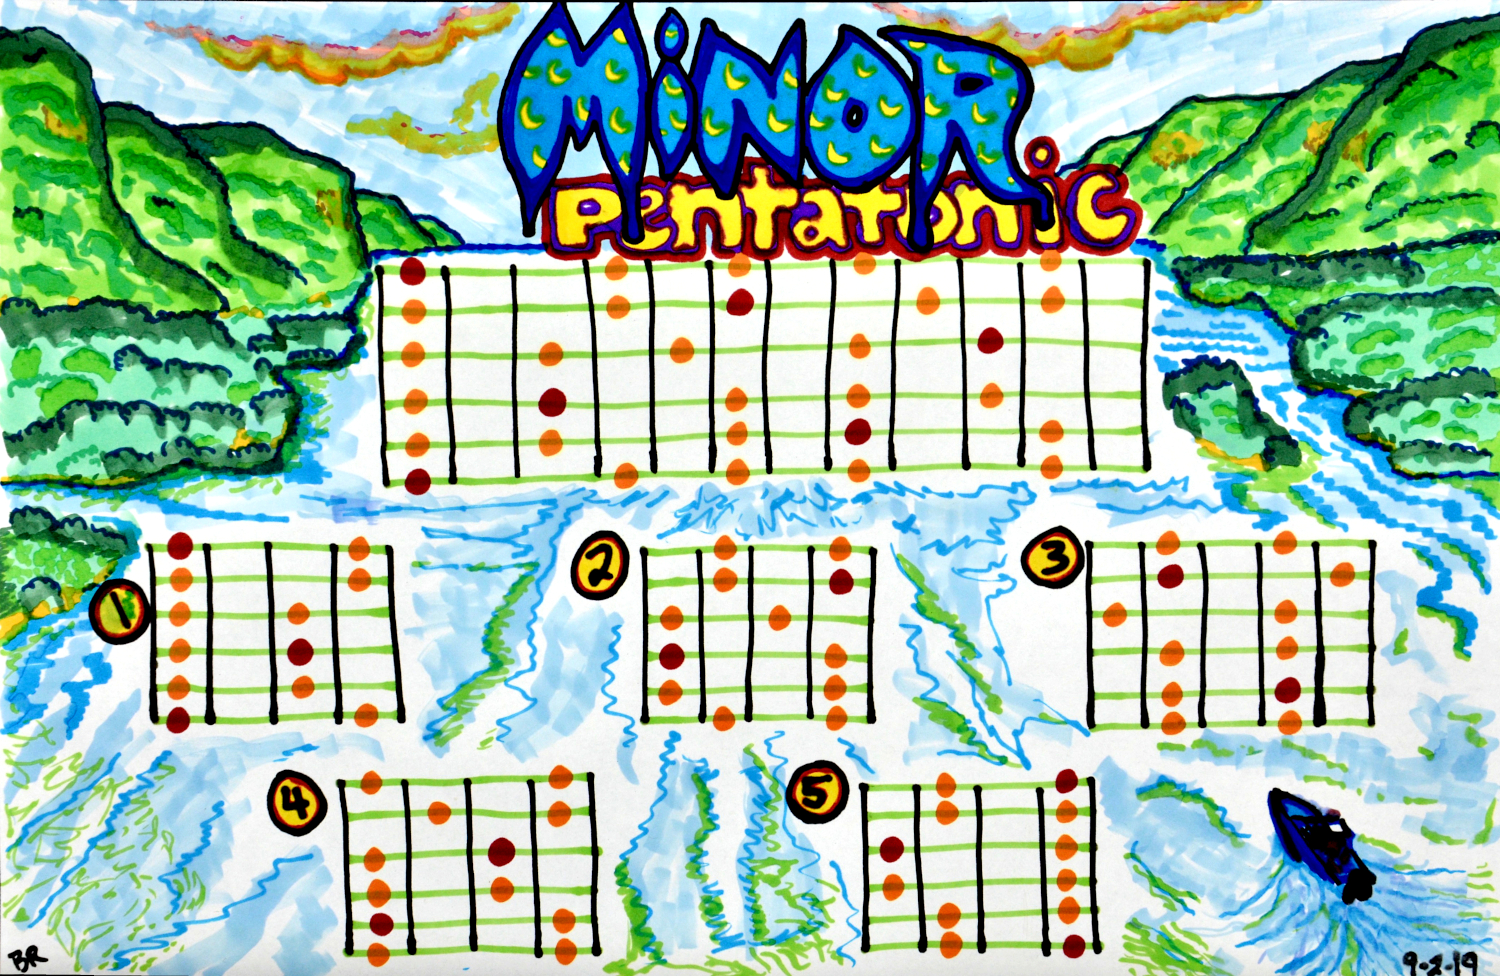 Minor Drawing guitar scale drawing, by Billy Reiter